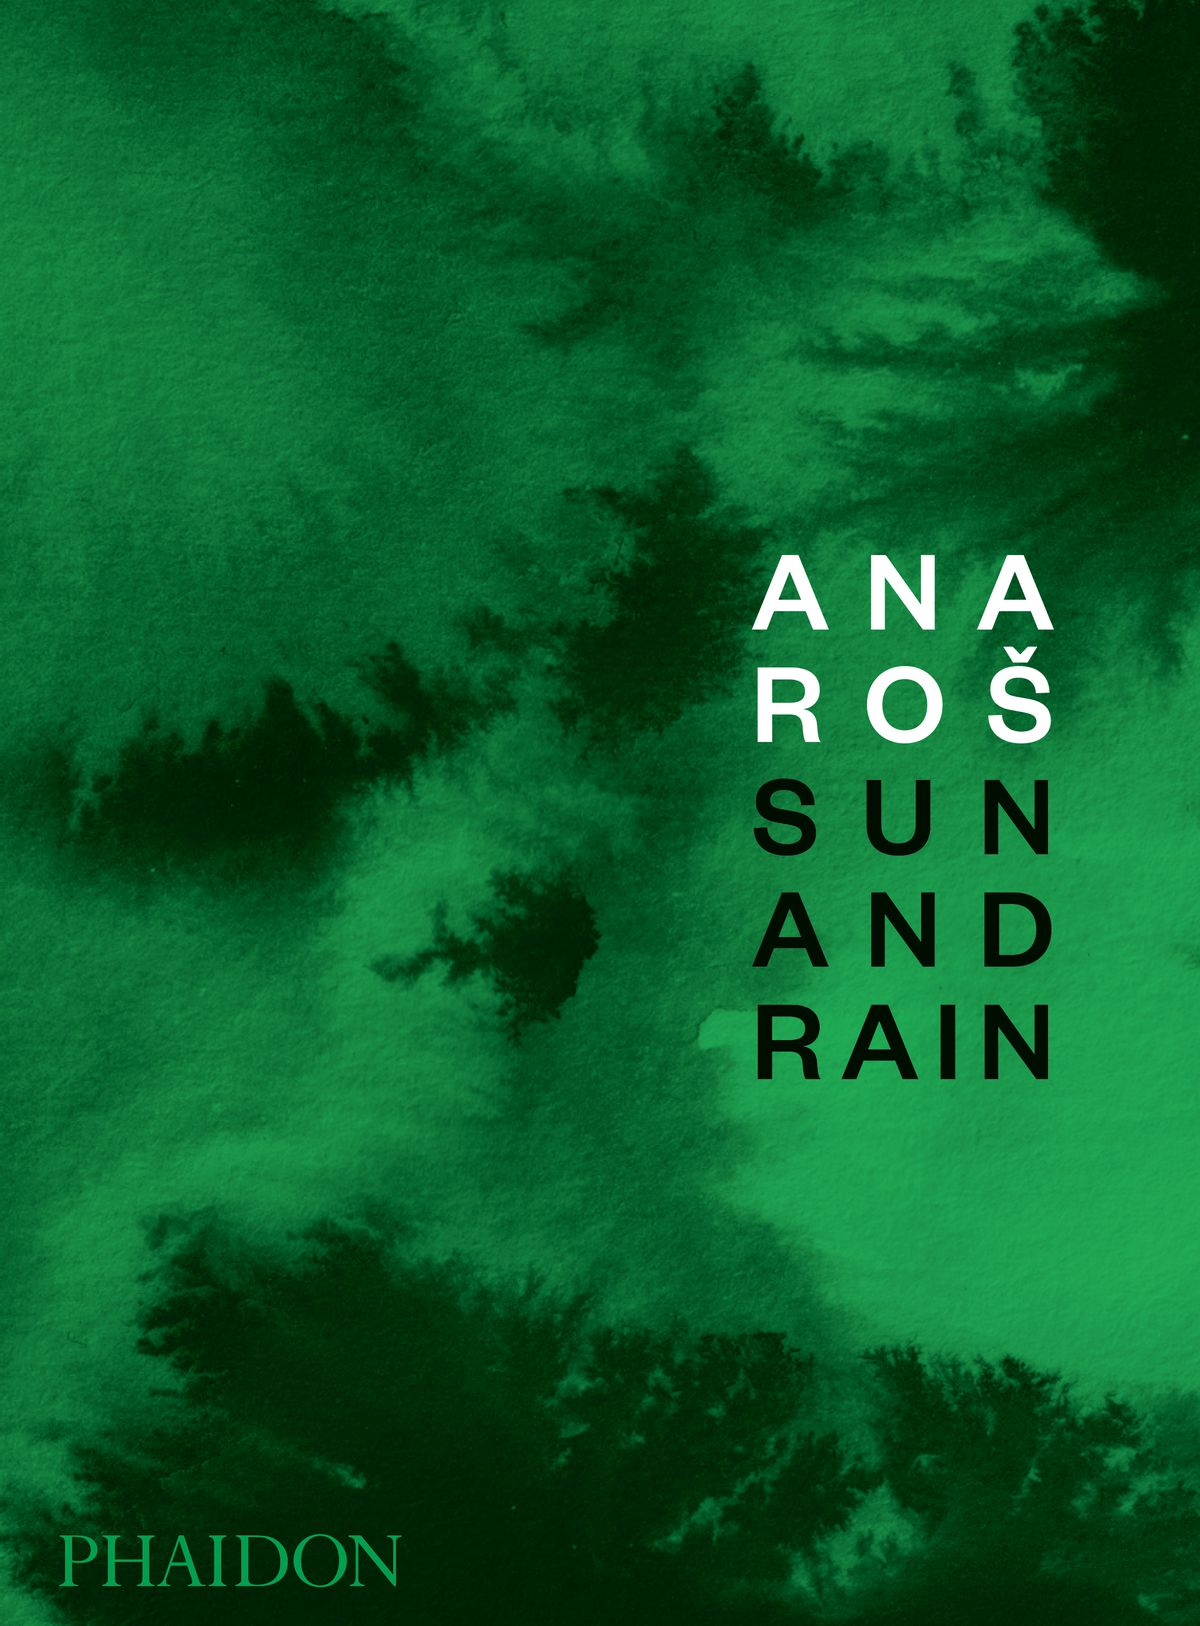 The book cover for Ana Ros: Sun and rain